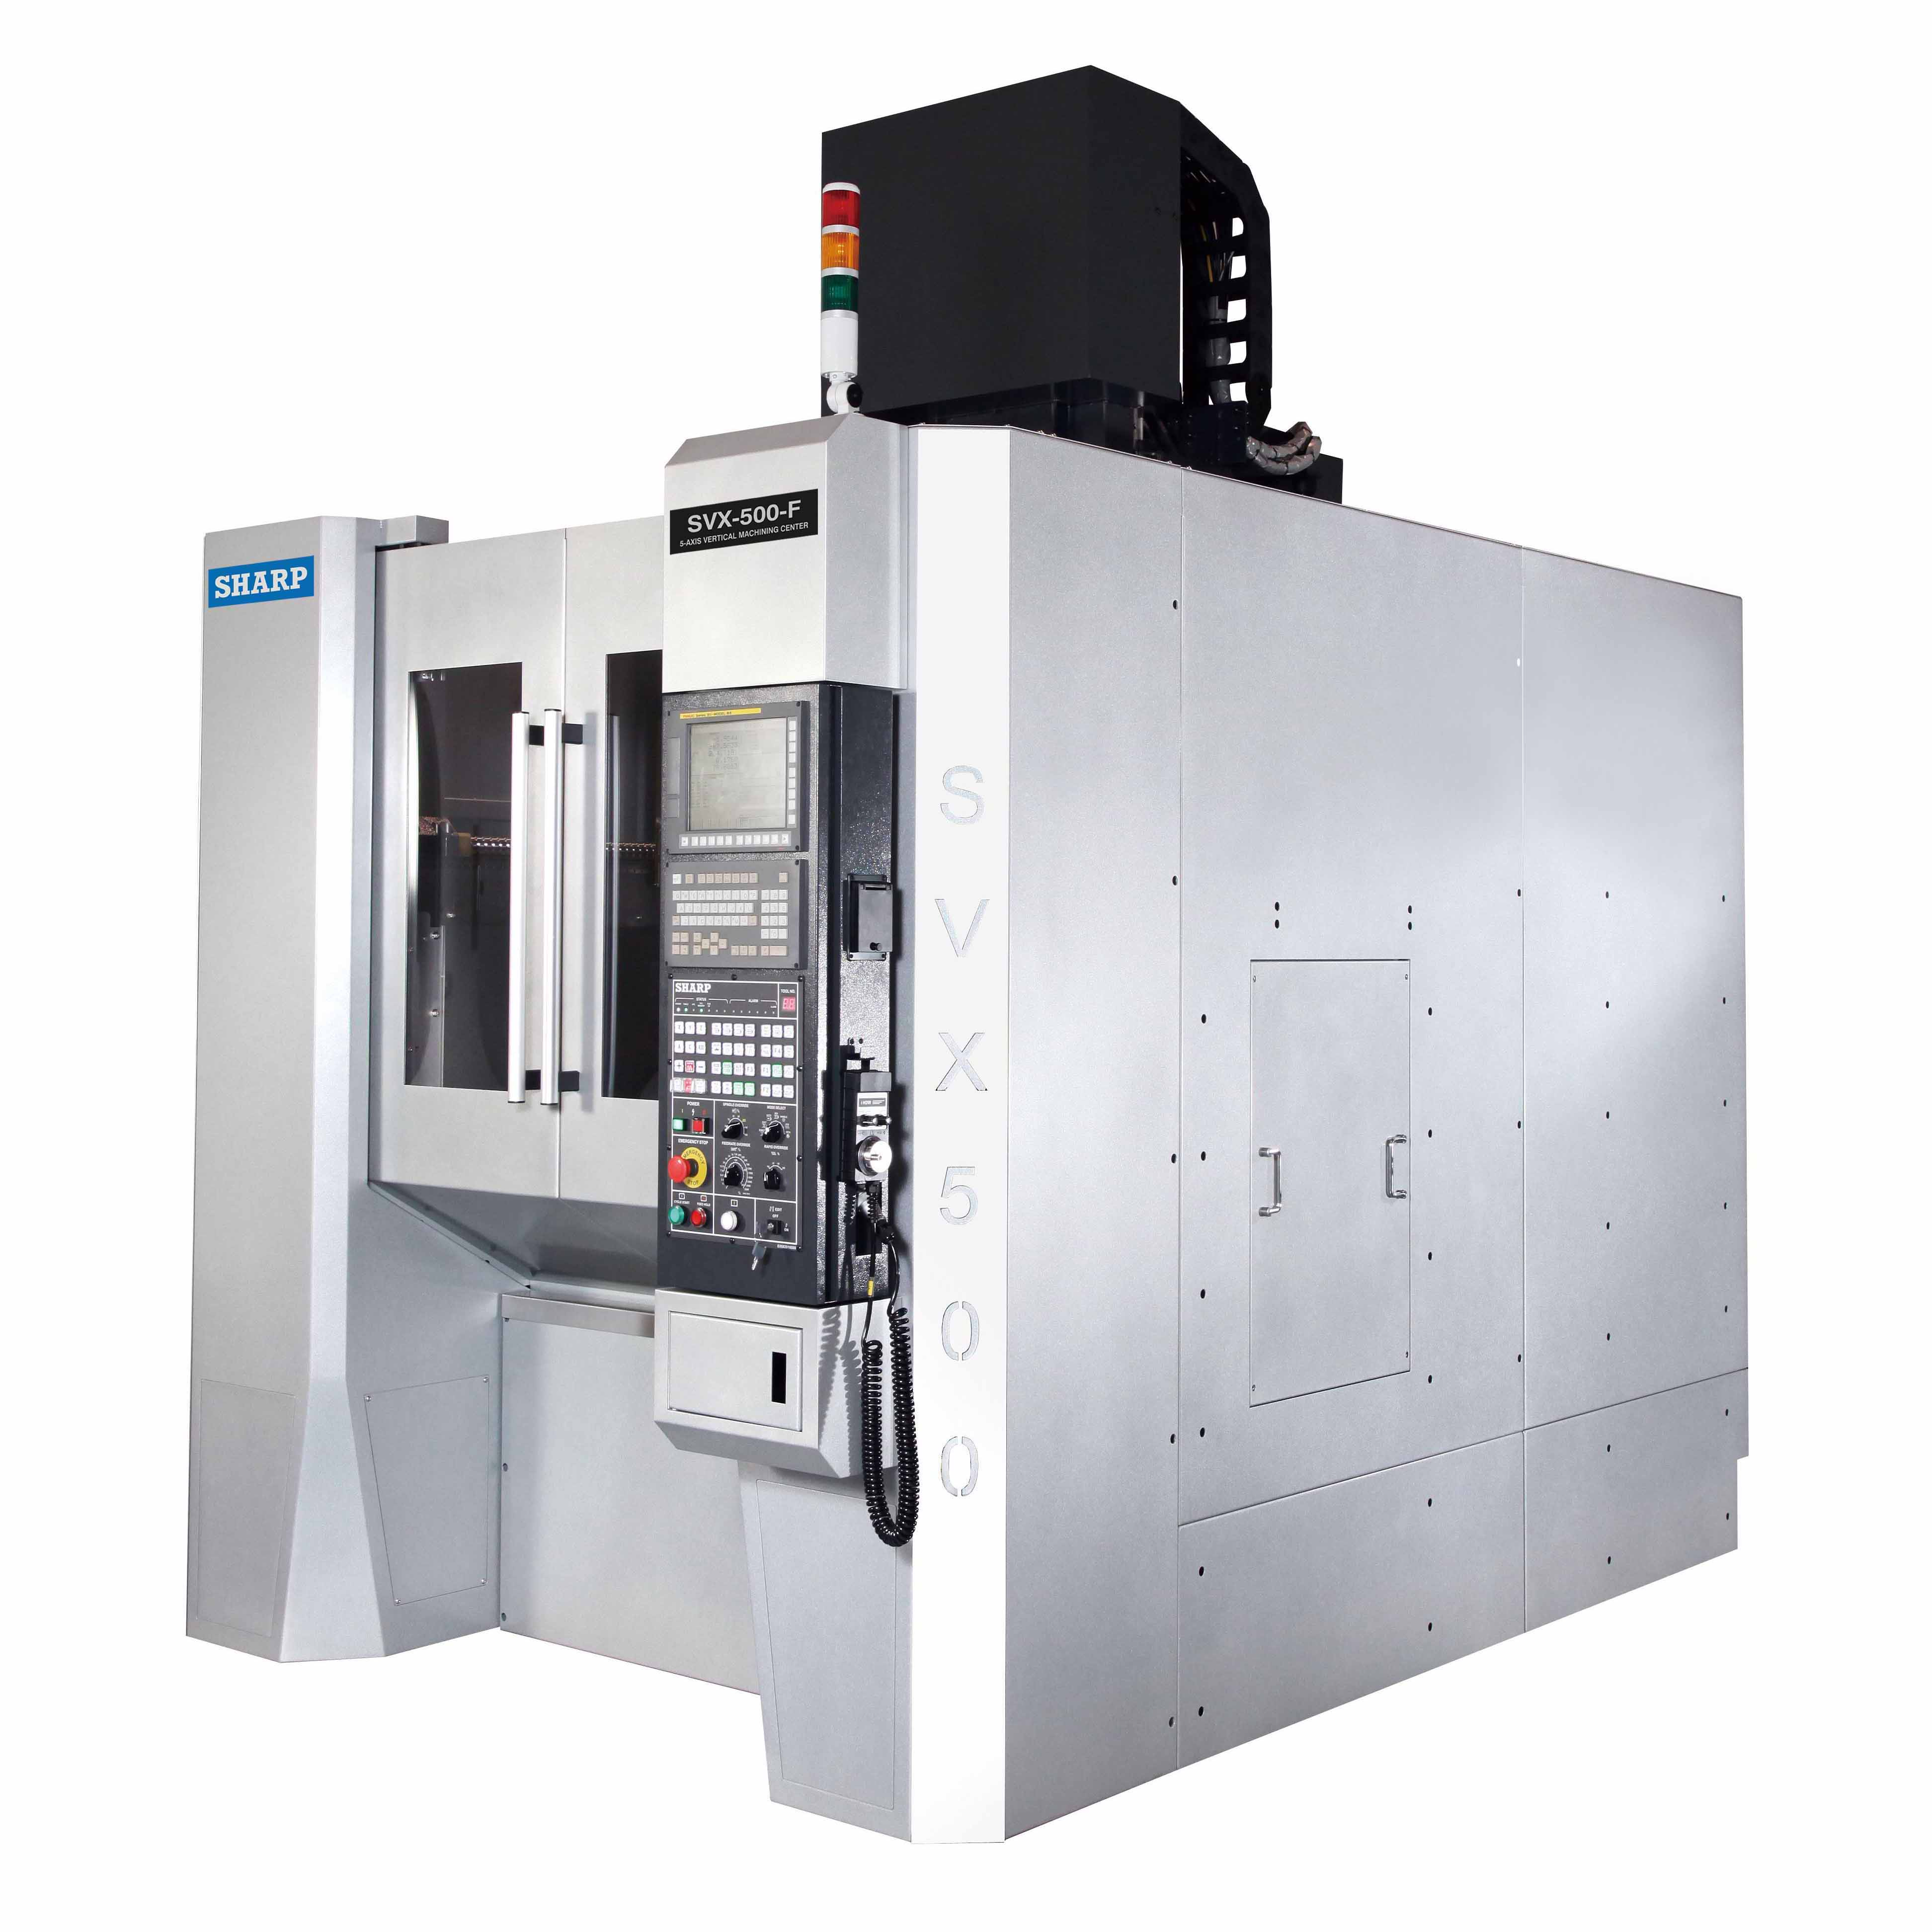 NEW SHARP SVX-500 5-AXIS CNC VERTICAL MACHINING CENTER